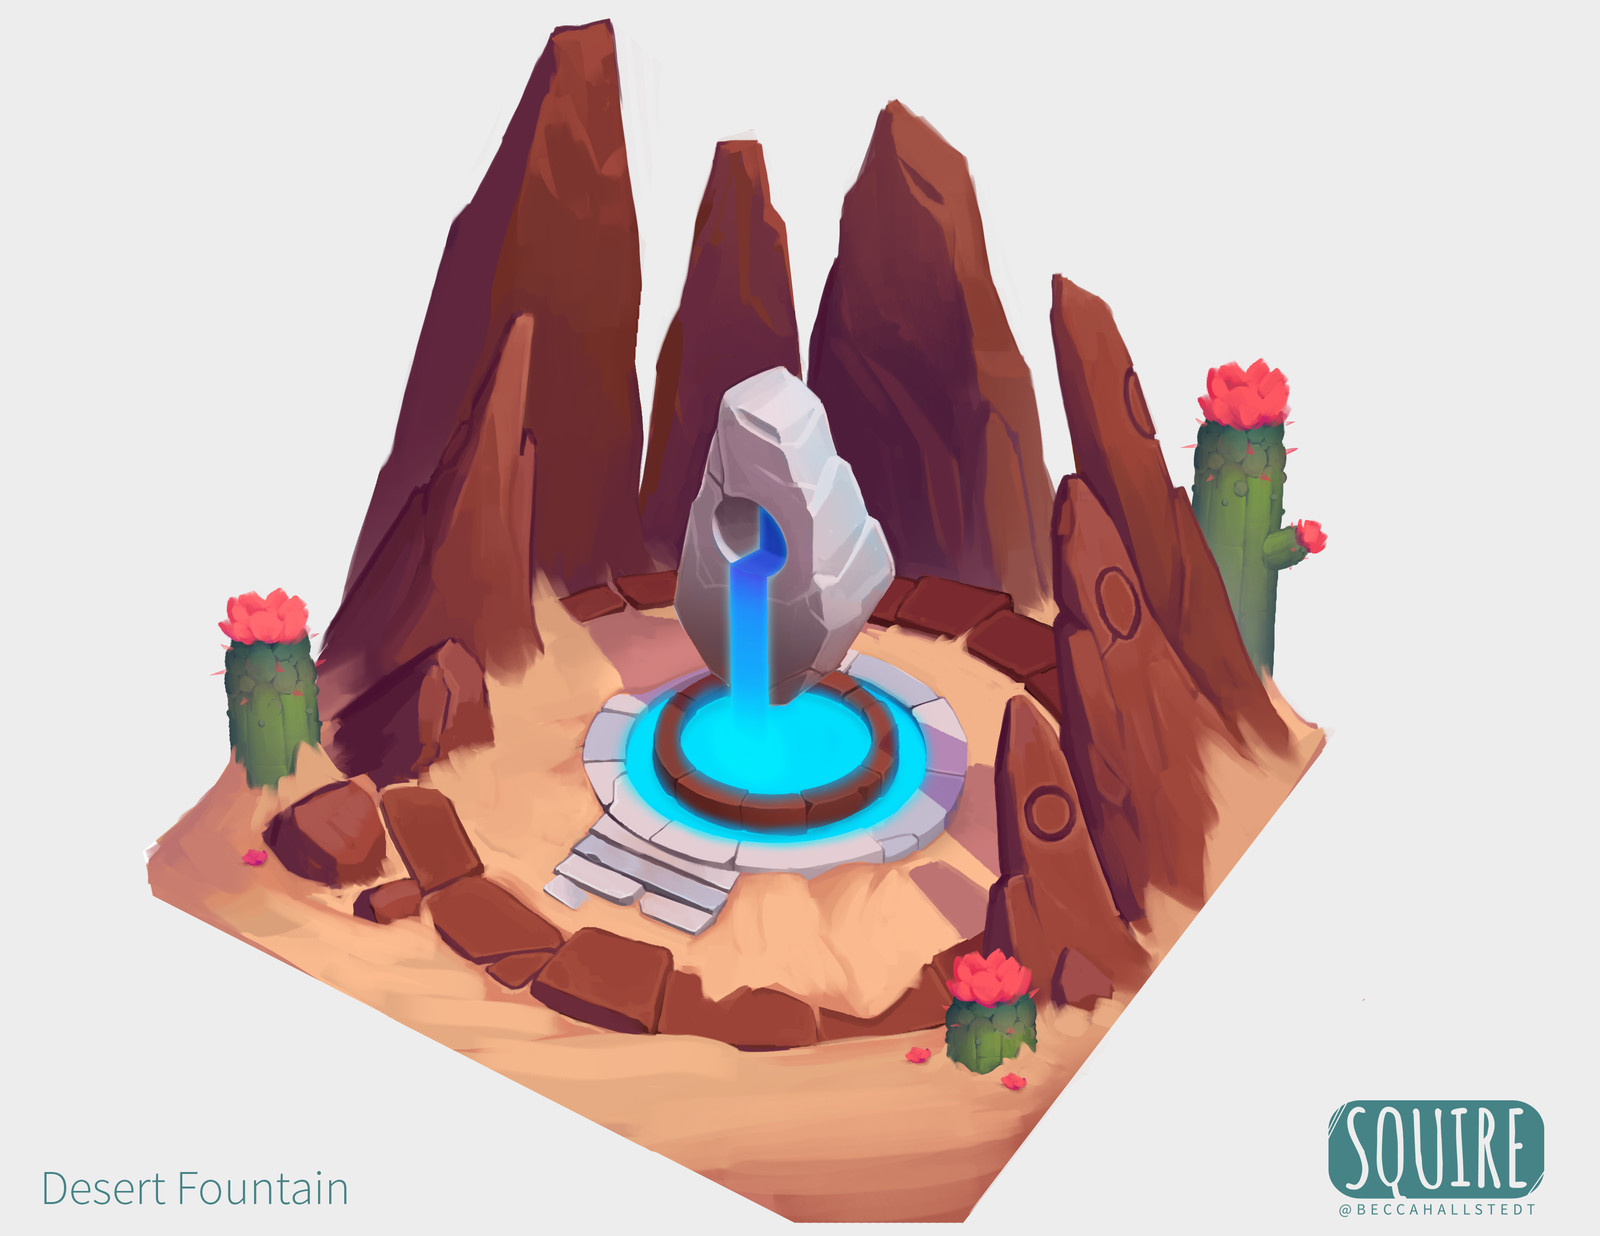 SQUIRE: Desert Fountain with Process